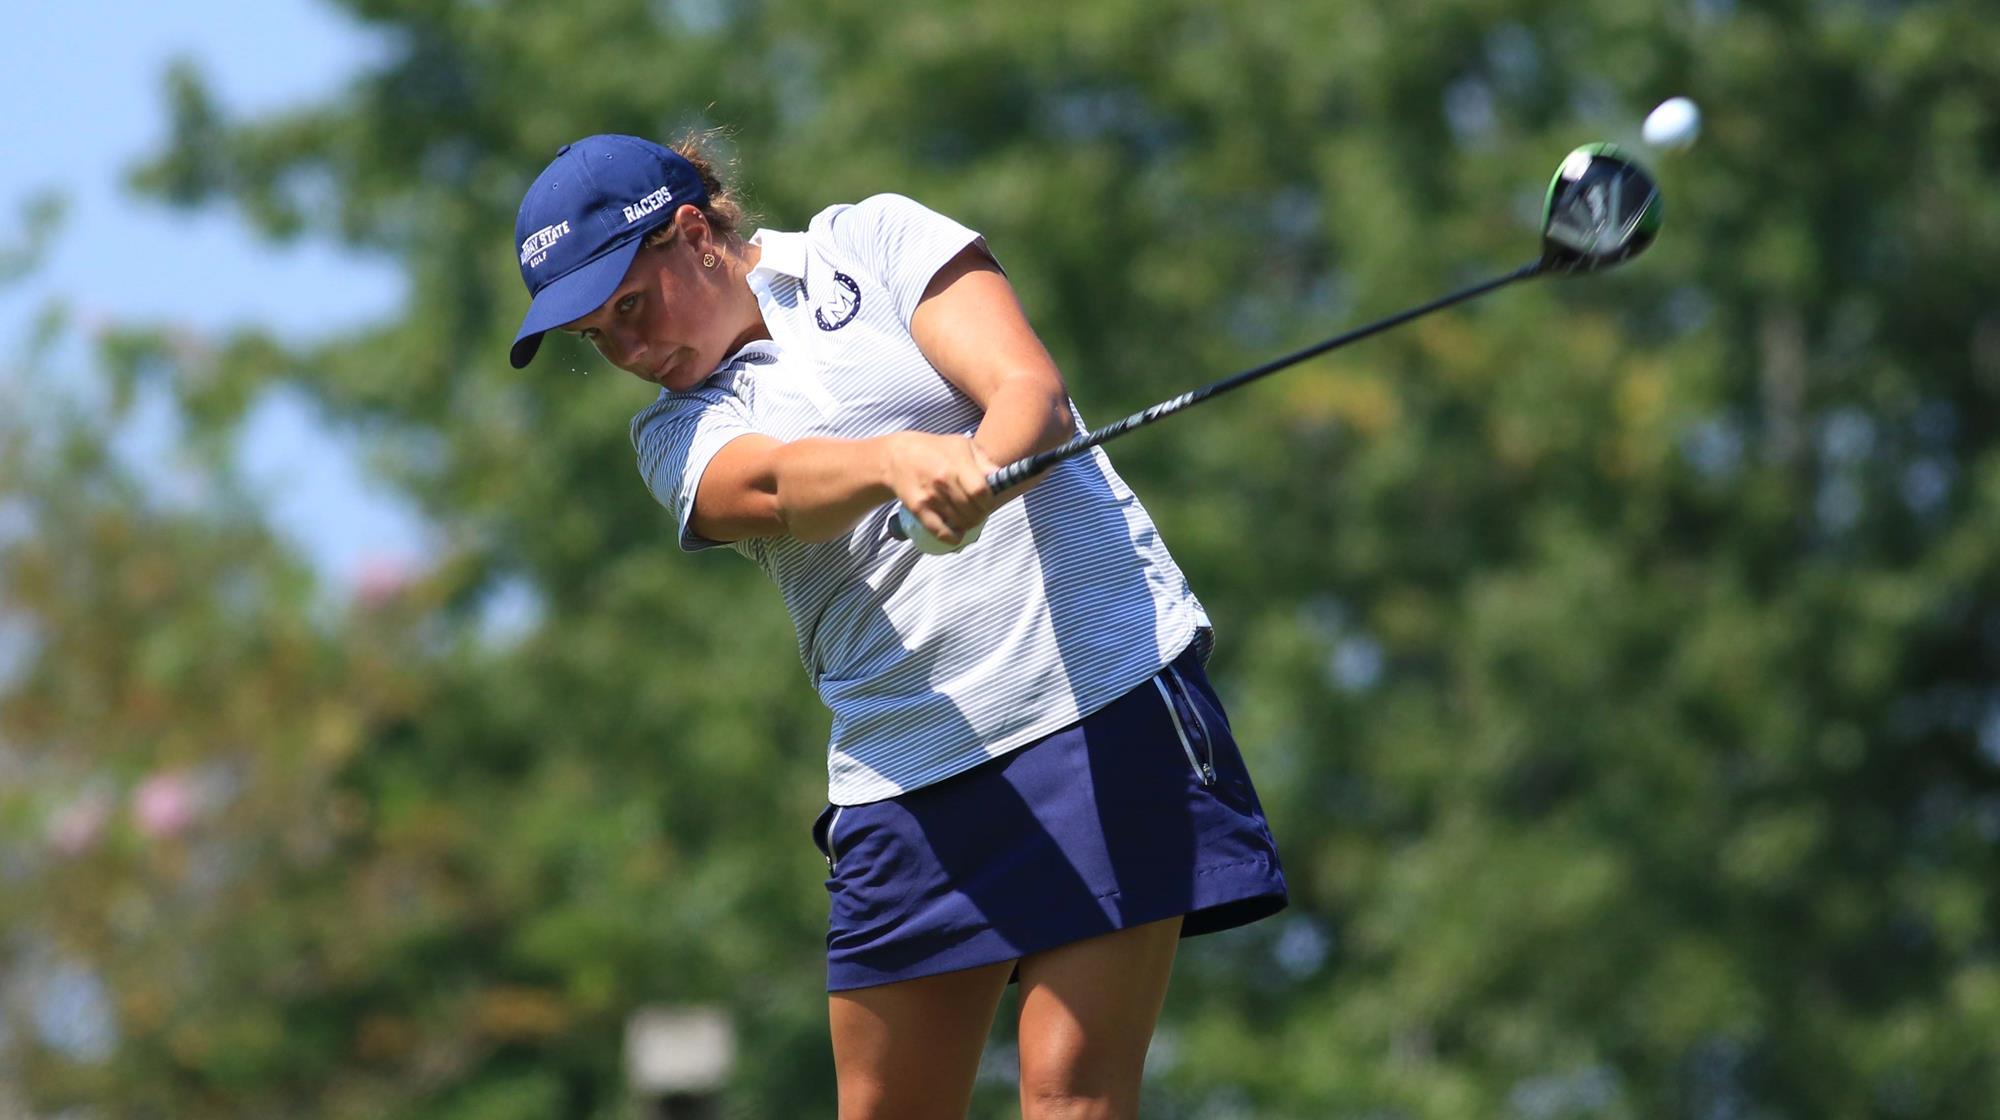 Hopkinsville's Moore qualifies for US Women's AM